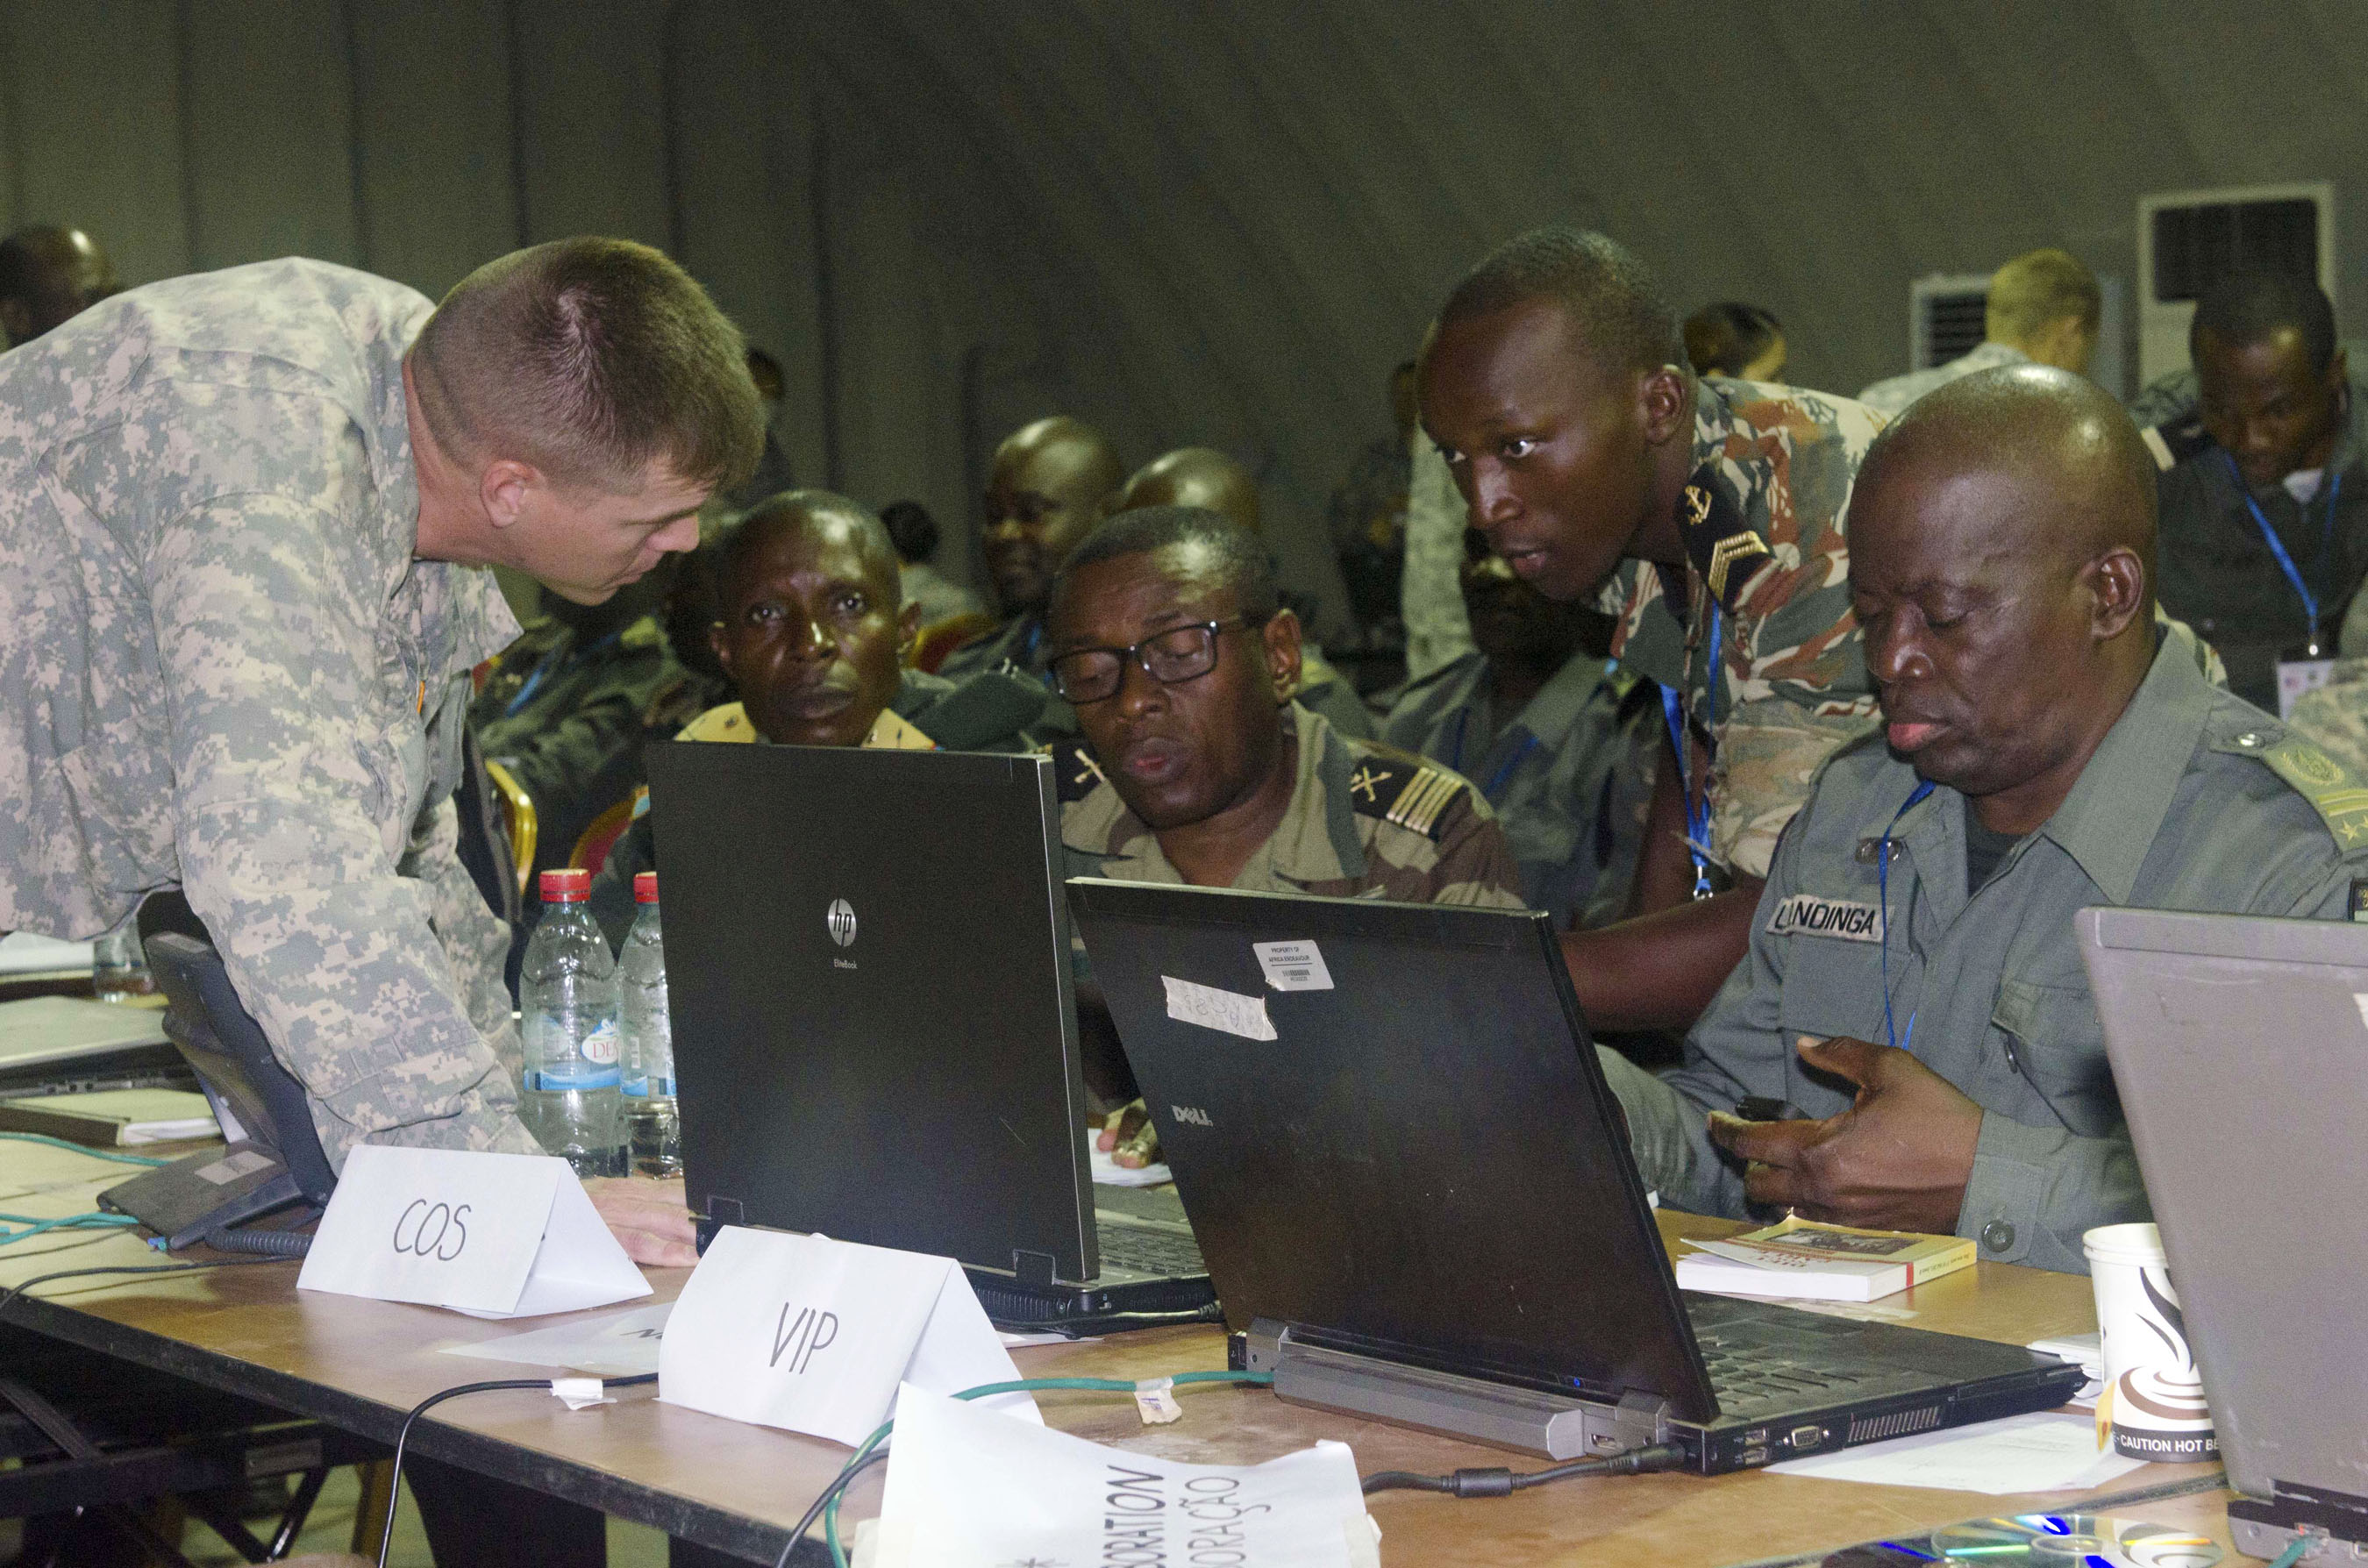 Lt. Col. Jonathan Shine, commander, 4th Battalion, 1st Field Artillery Regiment, 3rd Brigade, 1st Armored Division, works  with central African military personnel during the preparation phase of Central Accord 2015 in Libreville, Gabon, May 14. Shine and his counterparts  developed a plan of action for events taking place during the exercise. CA 15 exercises mission command proficiency for UN peacekeeping operations, develops multinational logistical and communications capabilities, and improves regional ability to command, control and support forward deployed forces. Approximately 400 military personnel from member nations are scheduled to participate in the exercise. The exercise consists of one week of classroom-based academics and one week of a command post exercise. (U.S. Army Africa photo by Staff Sgt. Michael Folkerth)